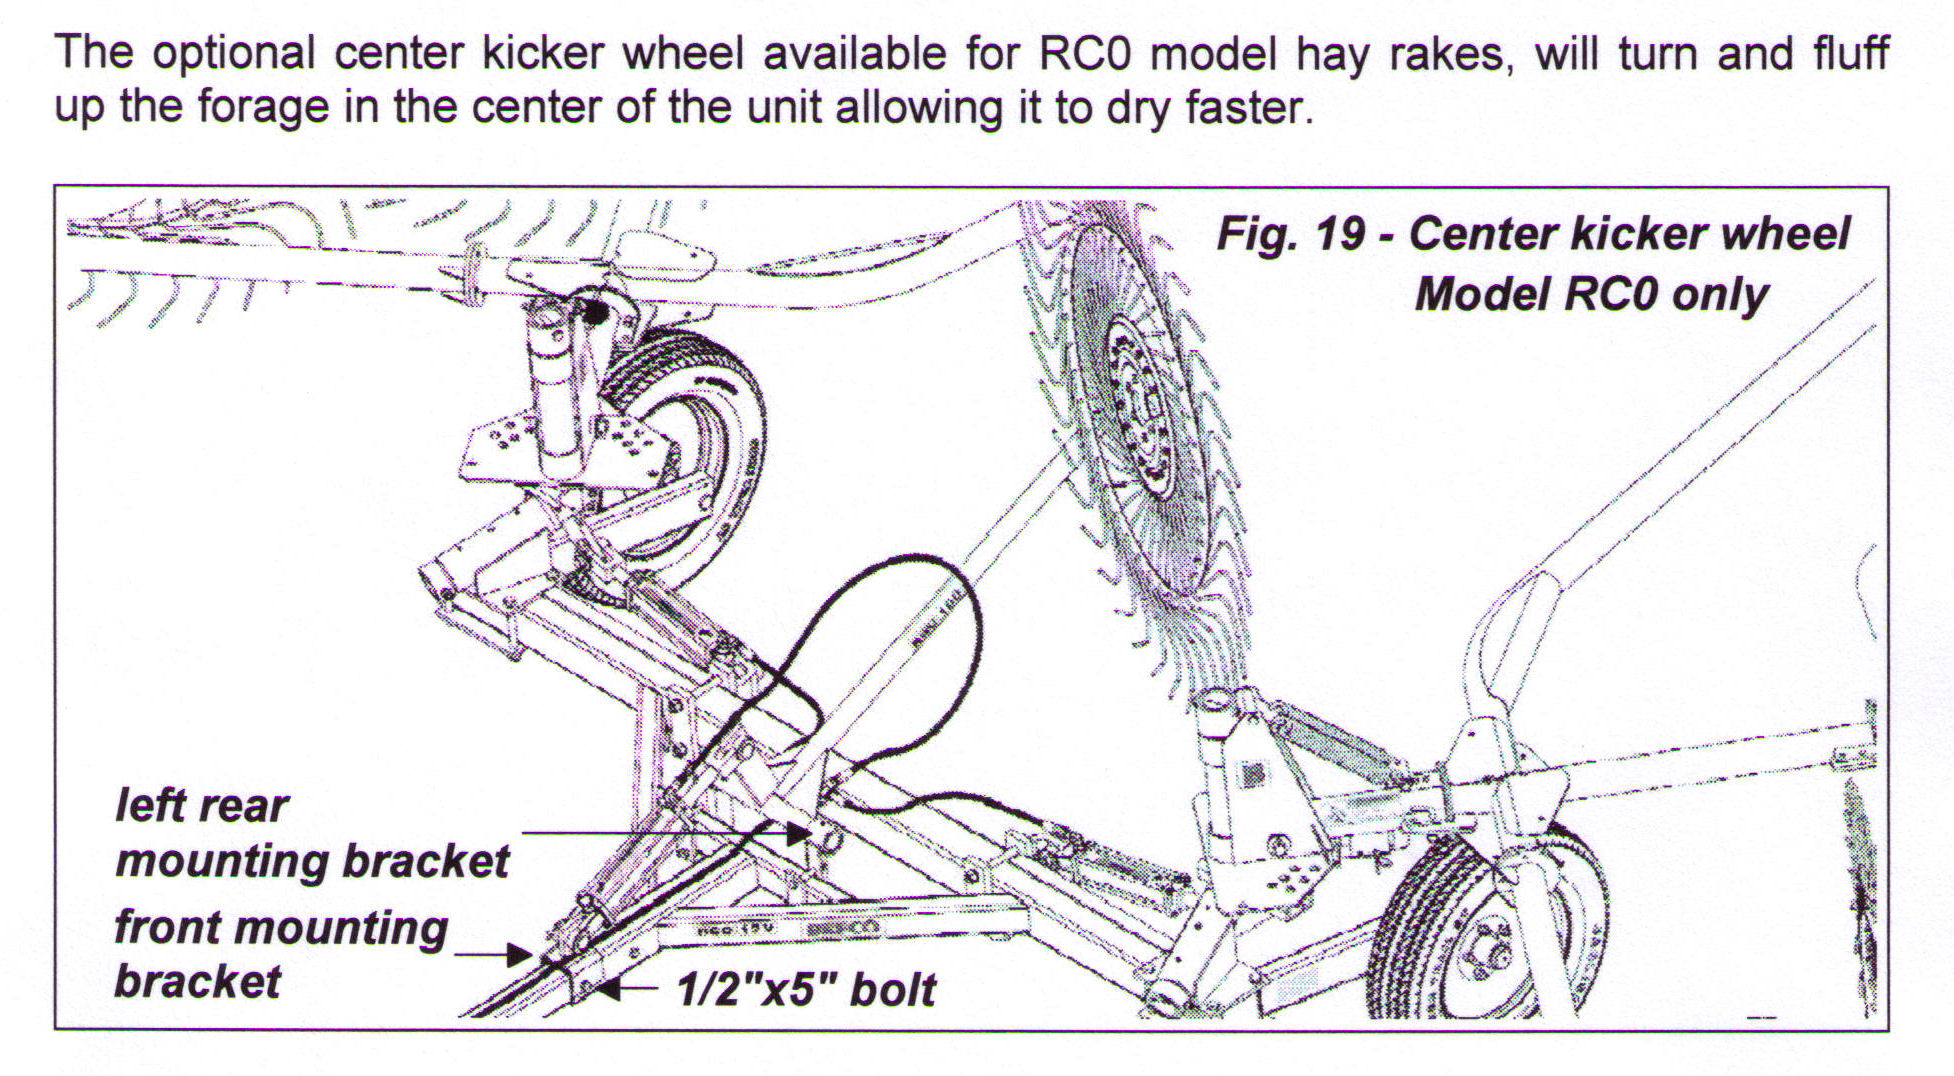 Center Kicker Wheel For RCO Models